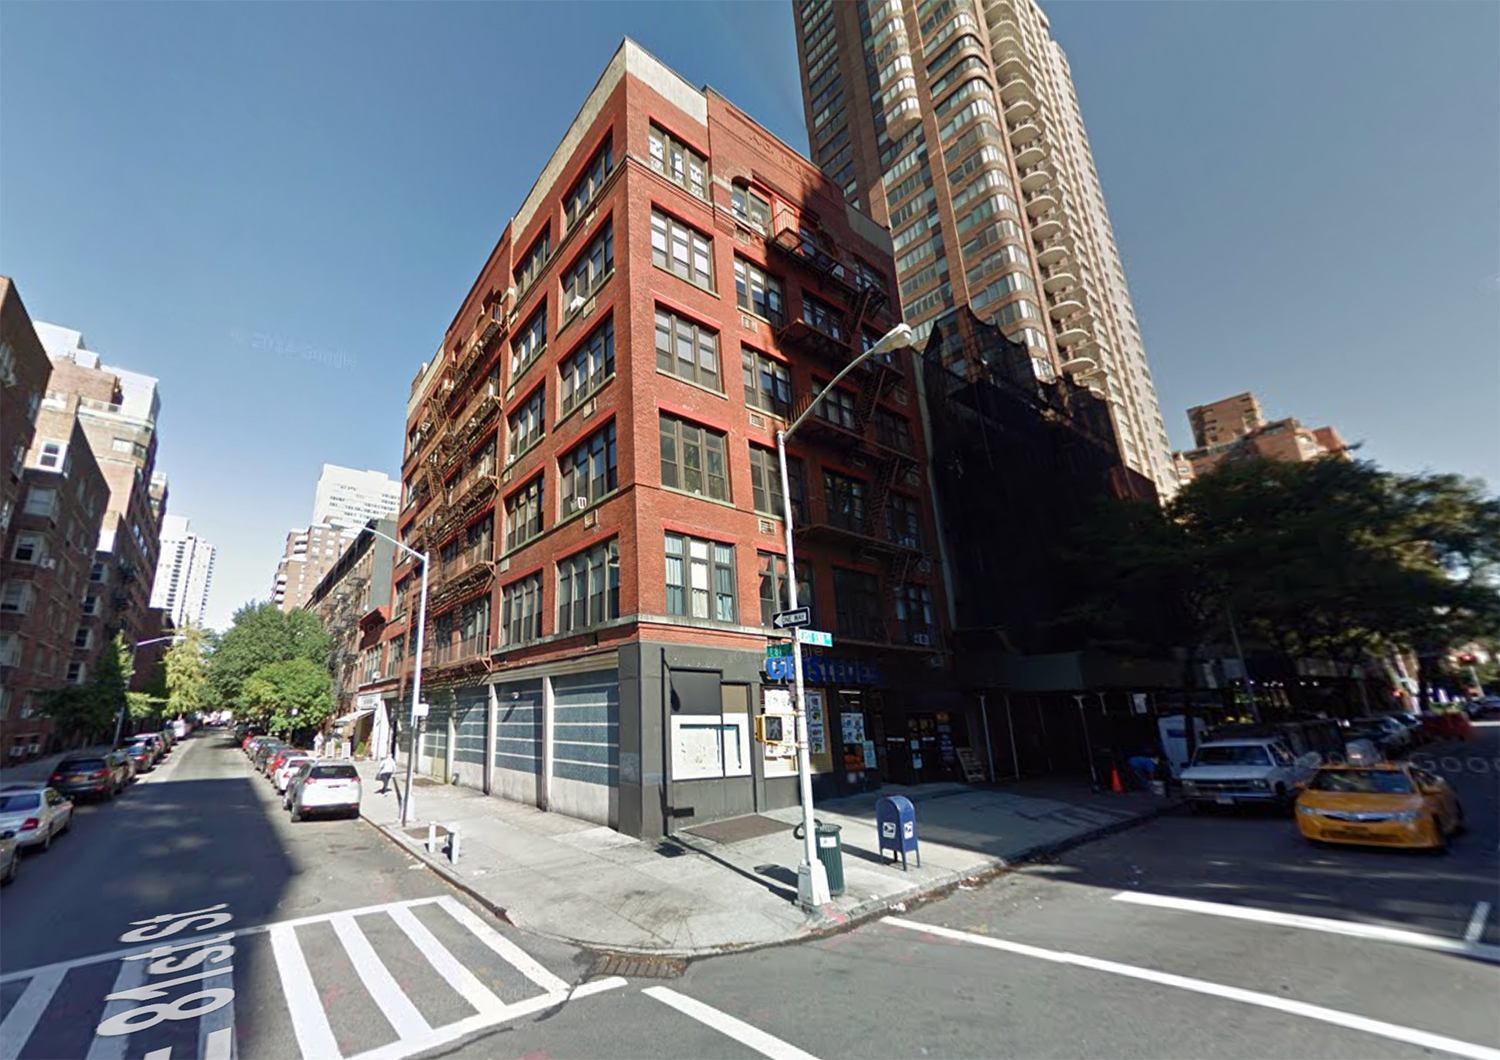 40 East End Avenue. Via Google Maps.